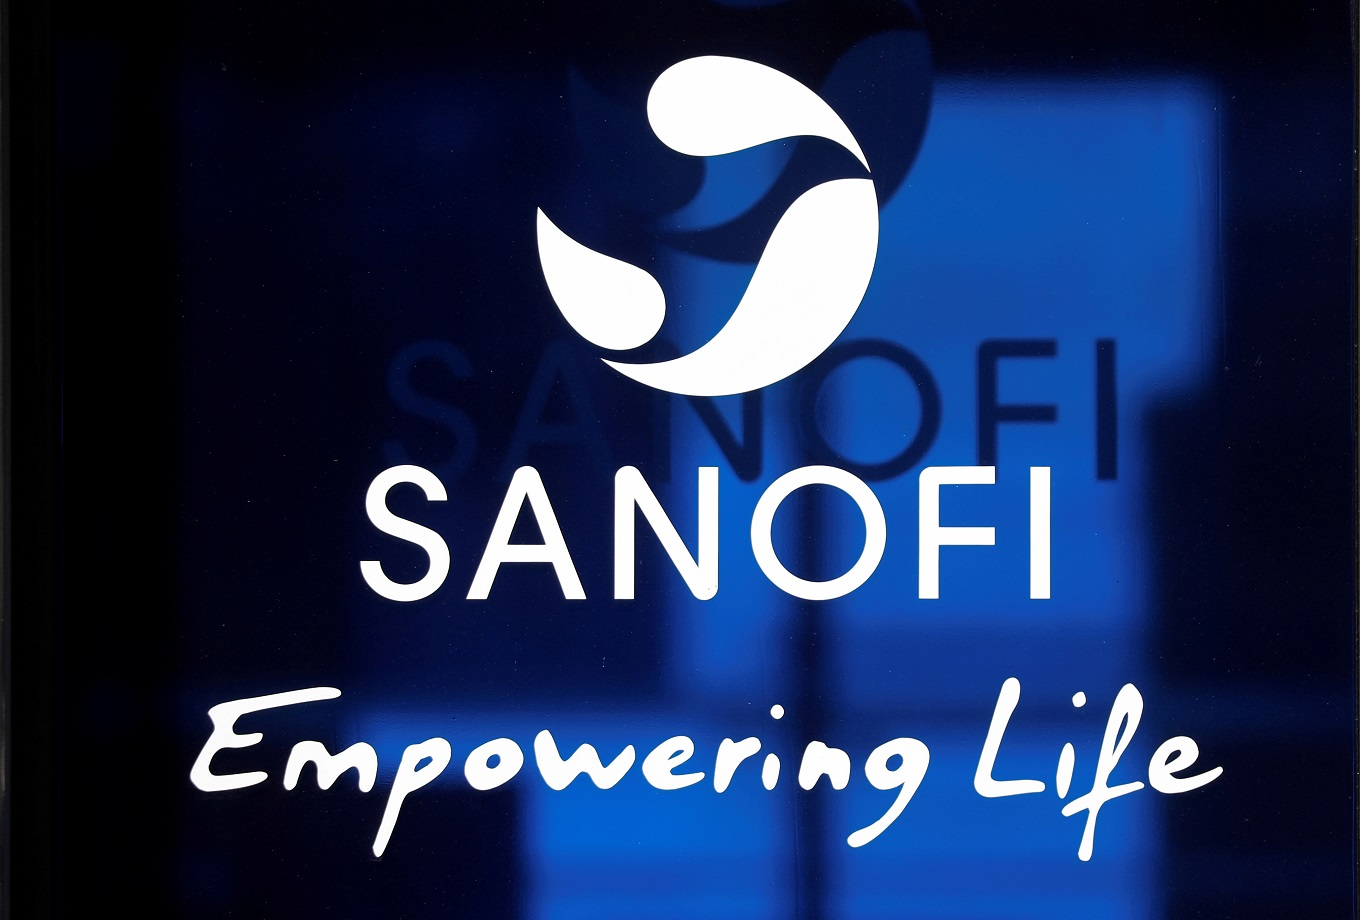 Sanofi charged with manslaughter